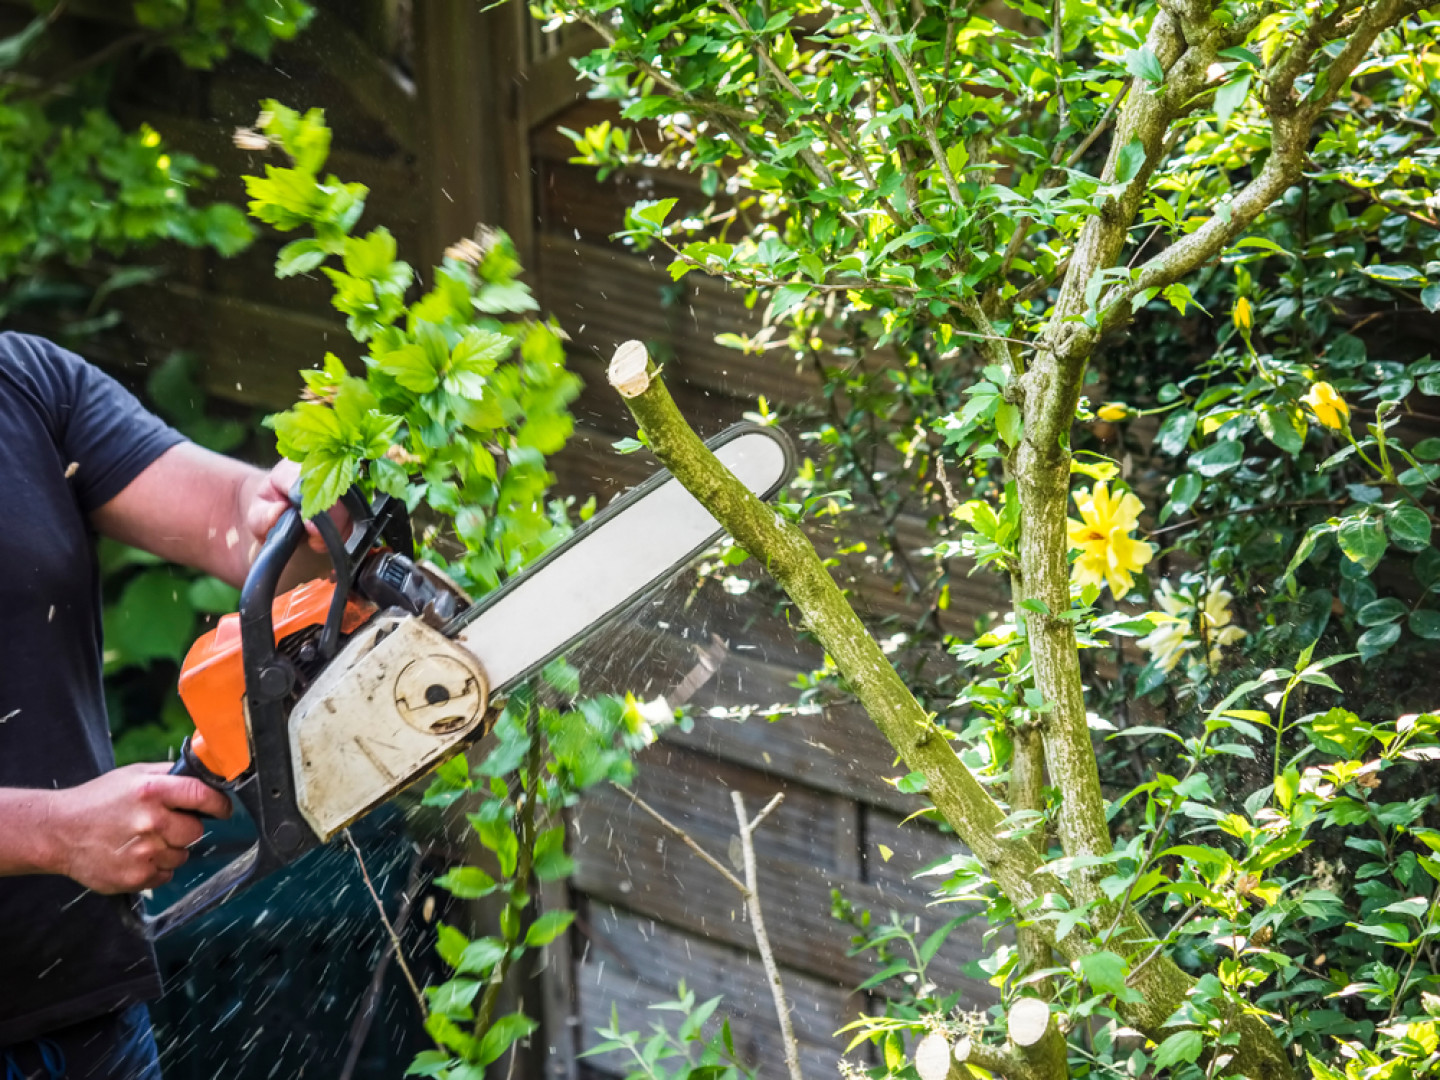 HELP YOUR TREES LOOK AND GROW THEIR BEST WITH TREE PRUNING SERVICES IN SHREVEPORT & BOSSIER CITY, LA